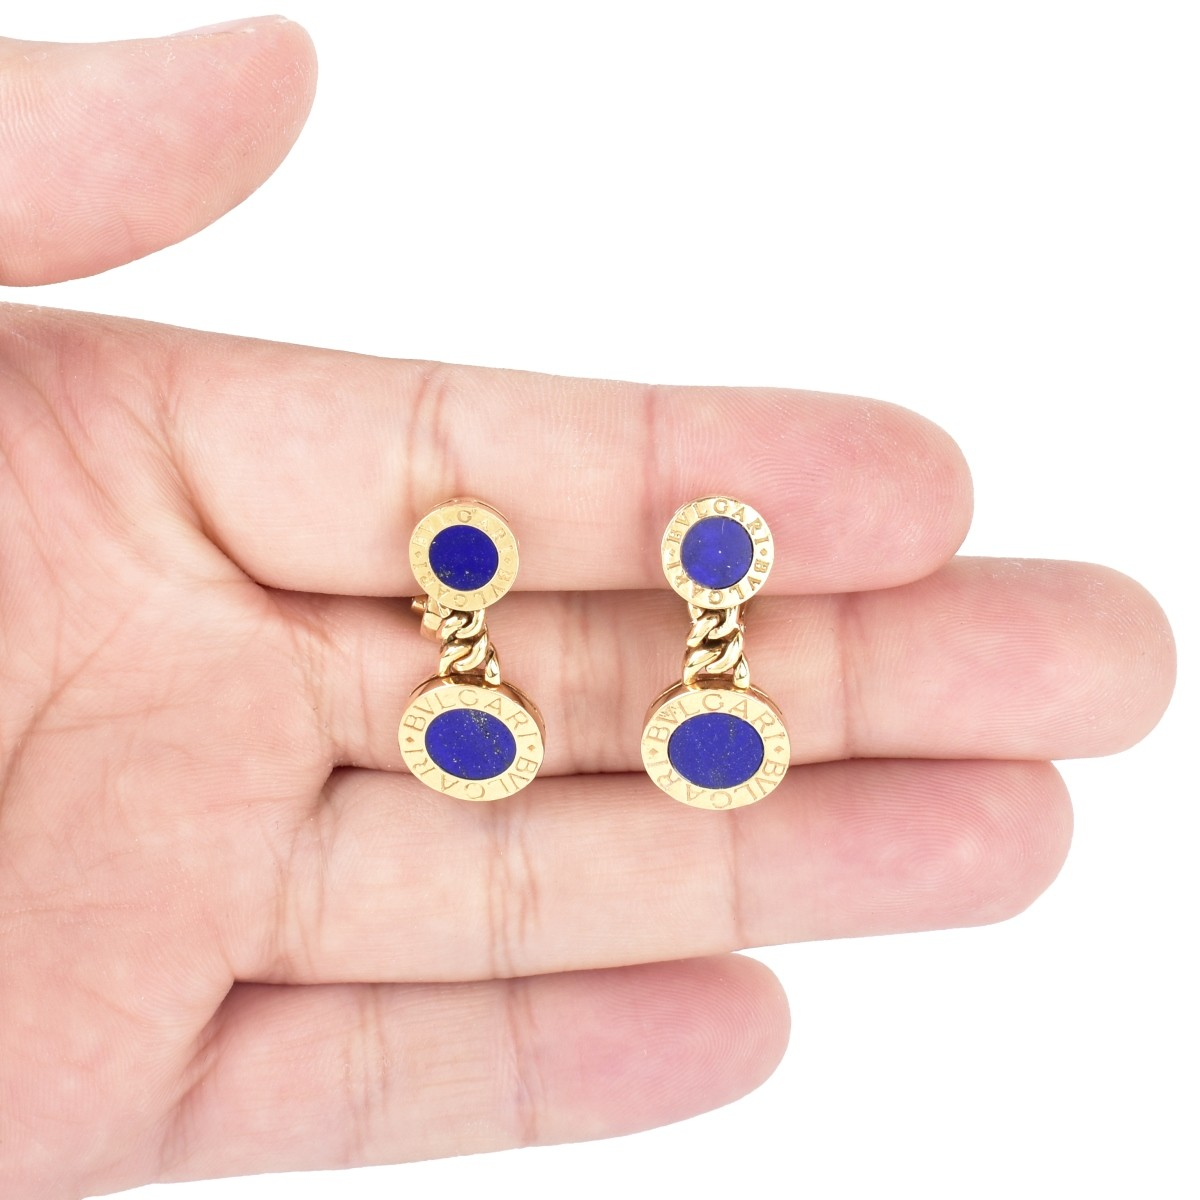 Bulgari 18K Gold and Lapis Earrings